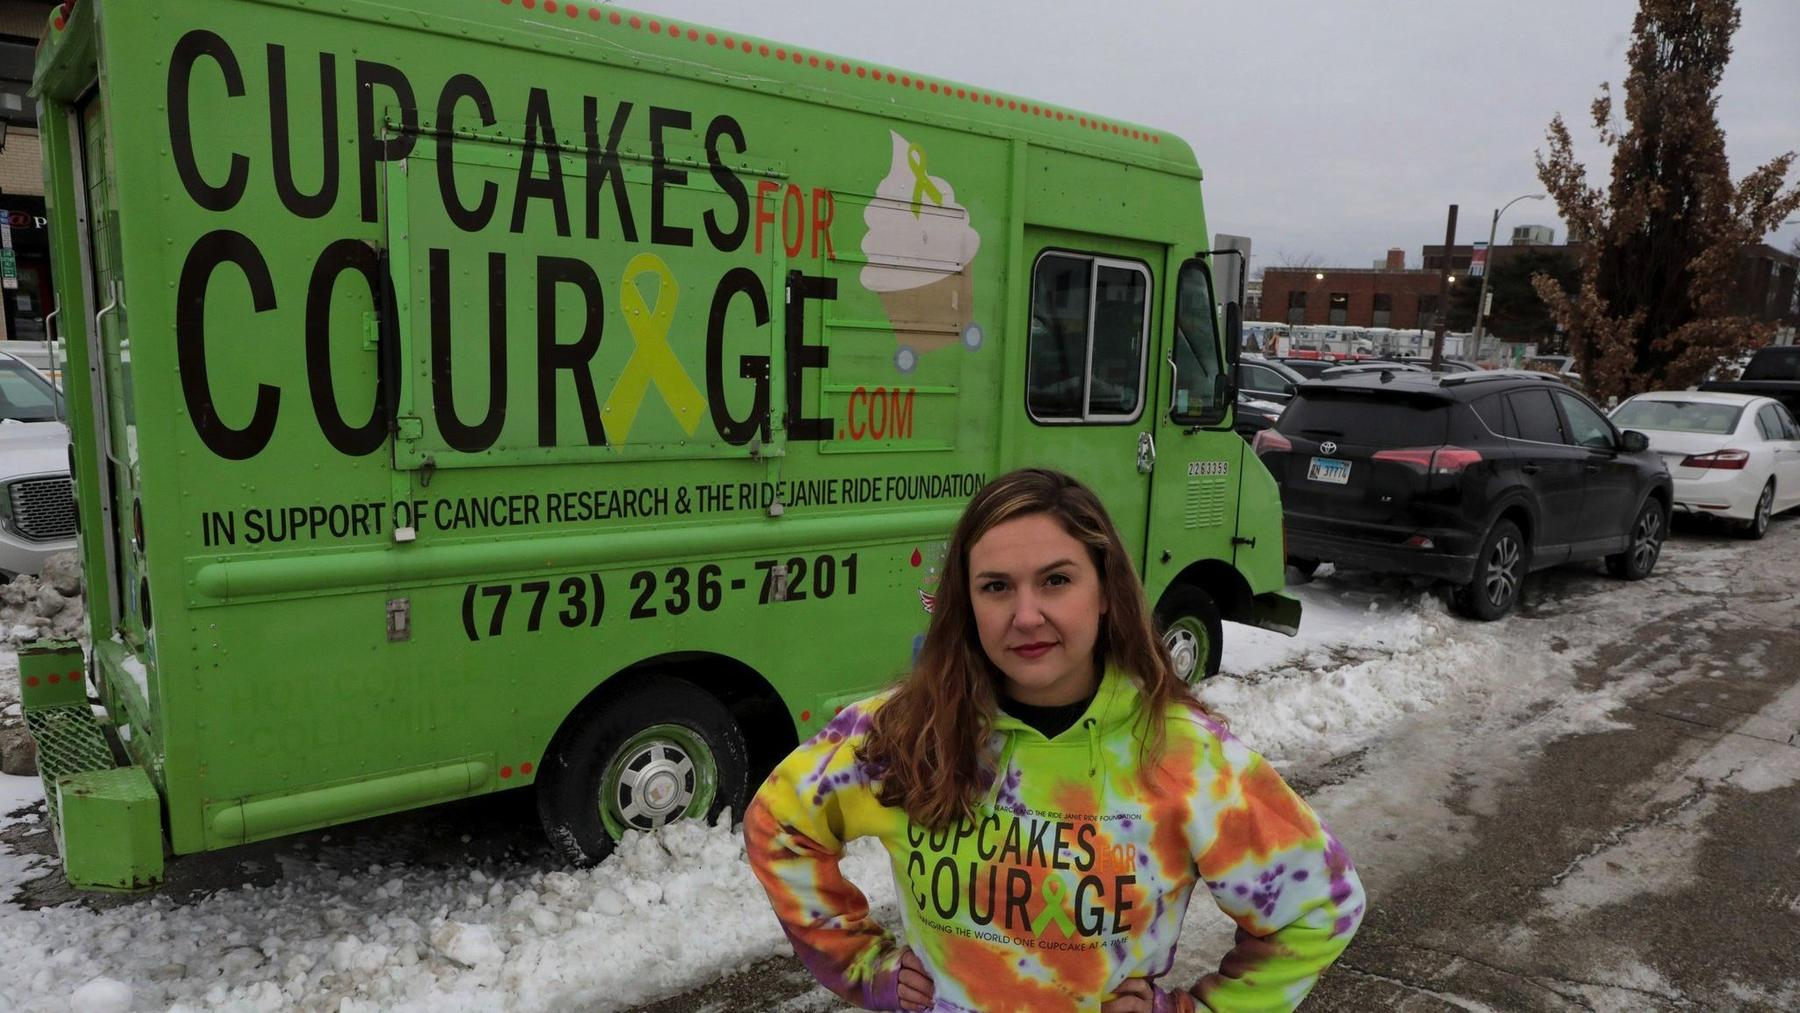 Chicago's food truck restrictions can stand, Illinois Supreme Court rules